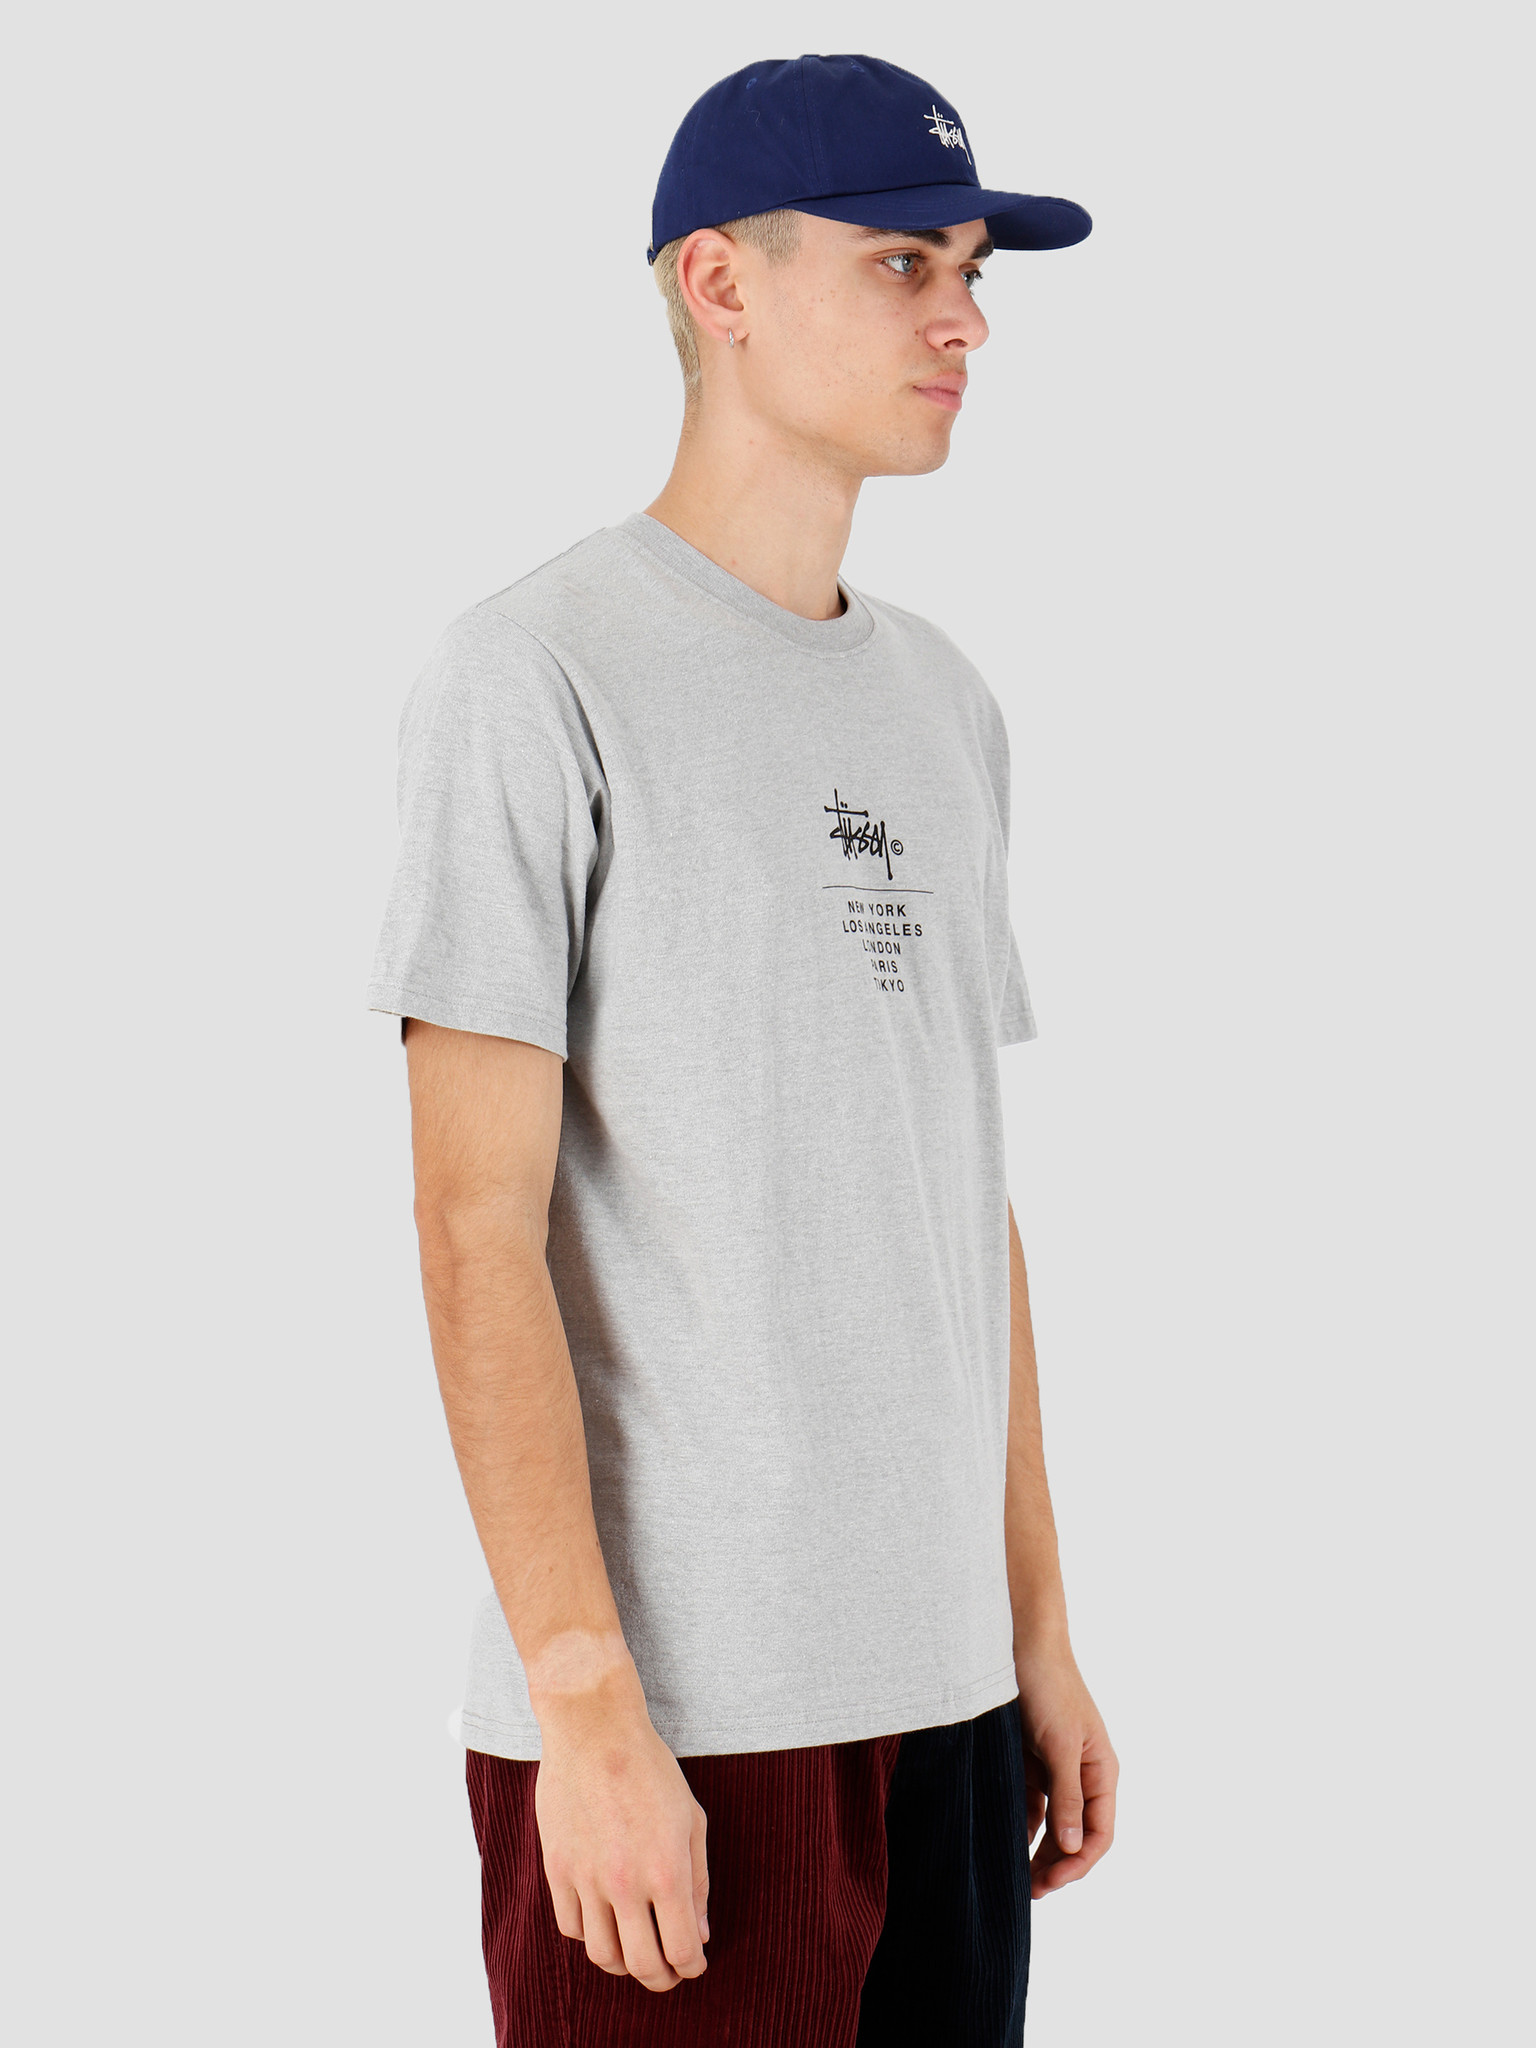 Stussy Stussy City Stack Tee Grey Heather 1904467